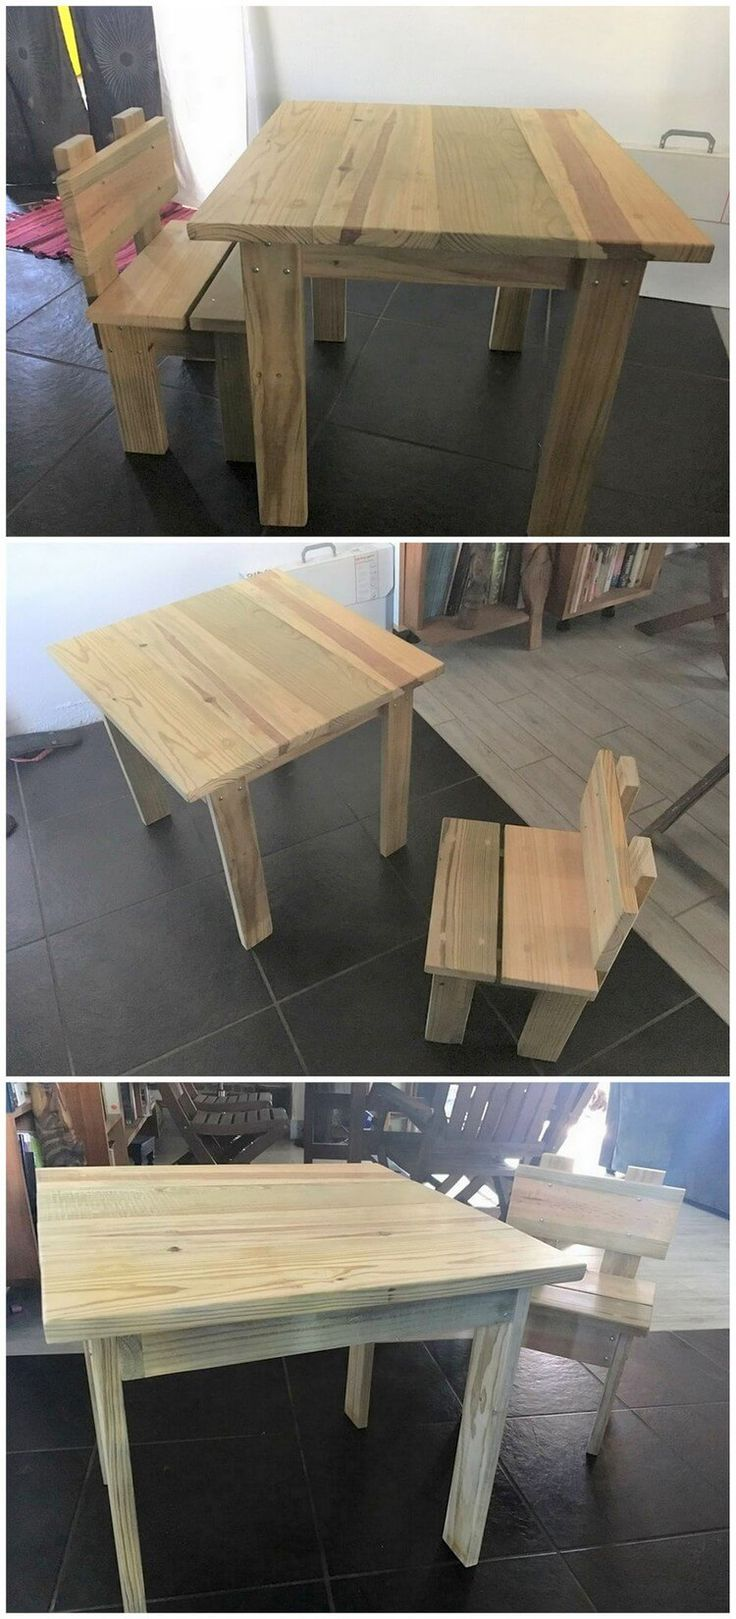 To provide a comfortable settlement to your kids in house for study, creating a simple wood pallet study table and chair will stand out to be a perfect choice. You can build up a low heighted table set so that it can easily match up with the level of the kid's height. Take the best idea from this amazing wood pallet created table and chair set.